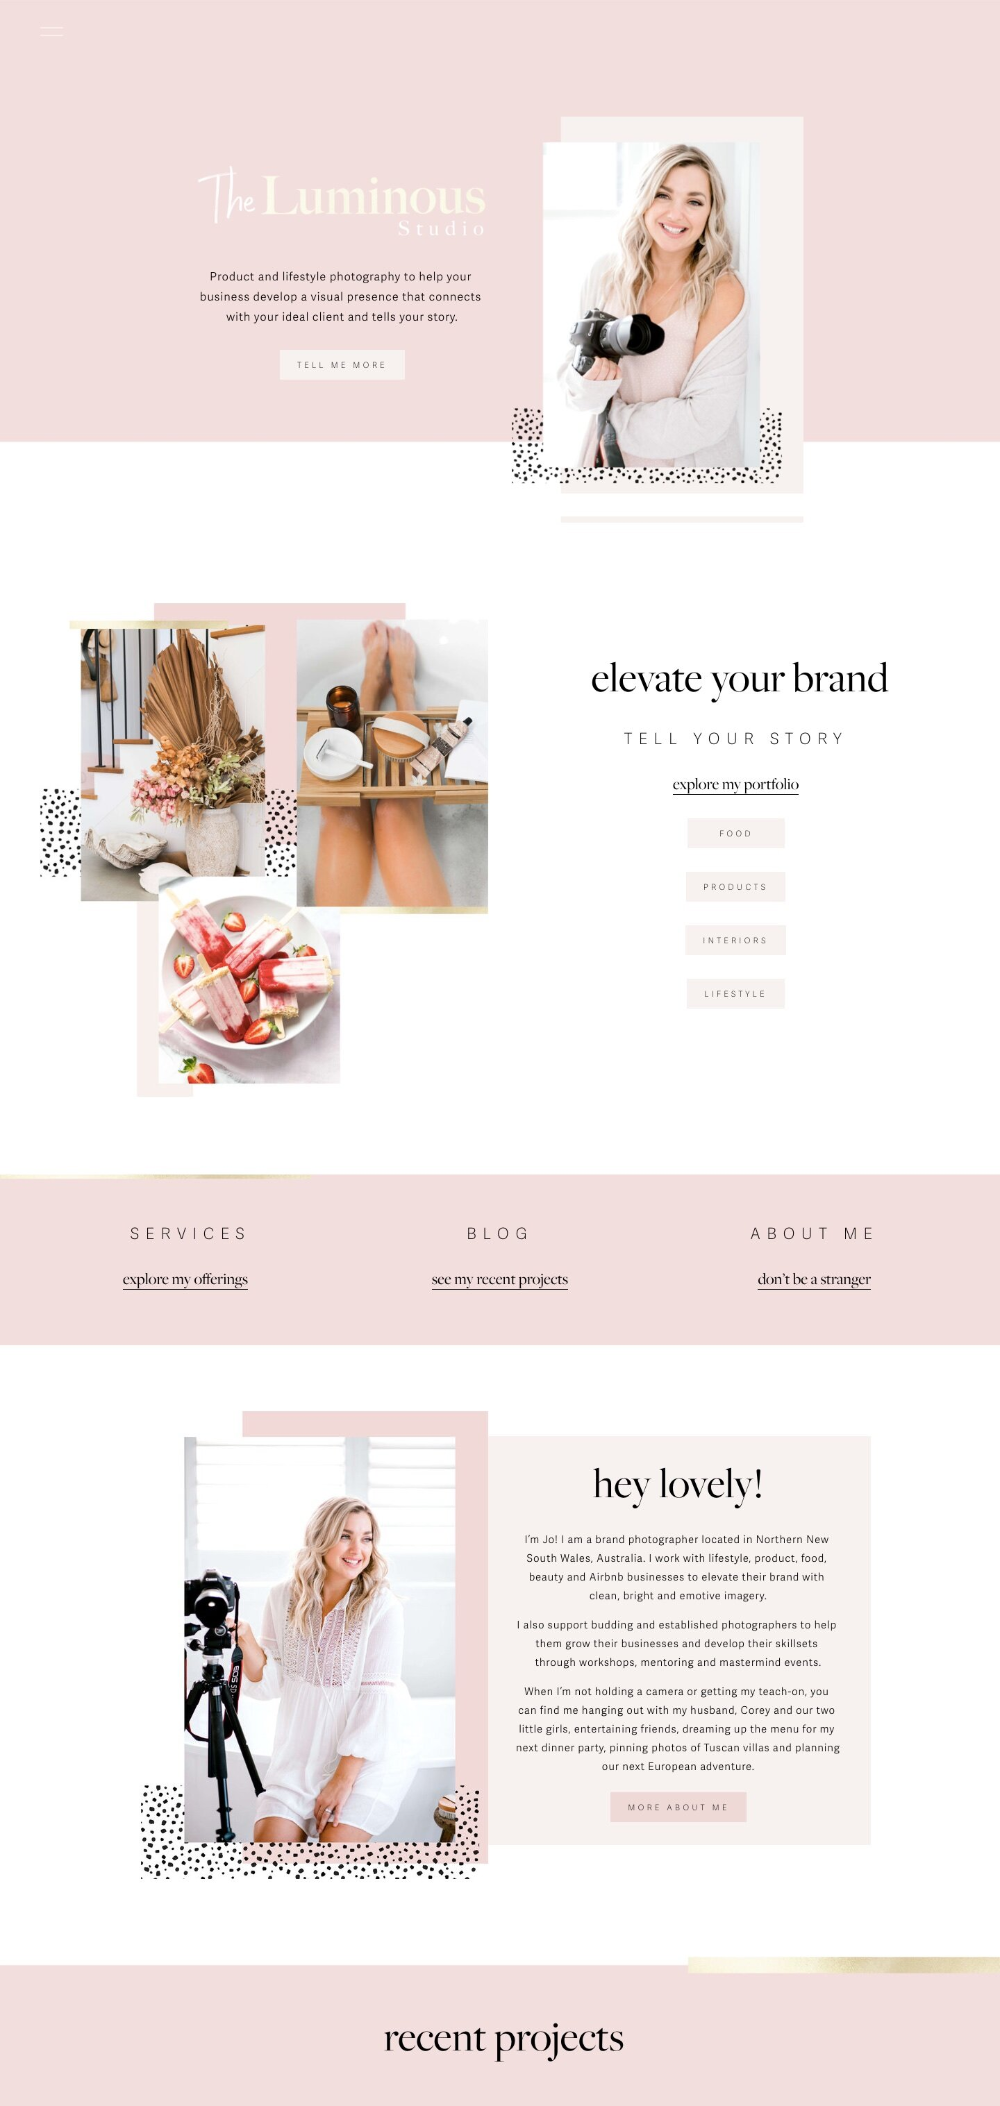 50 Example Squarespace Websites Built By Square Secrets Course Students Paige Brunton Squarespace Templates Squarespace Designer Courses In 2020 Squarespace Web Design Photography Website Design Squarespace Website